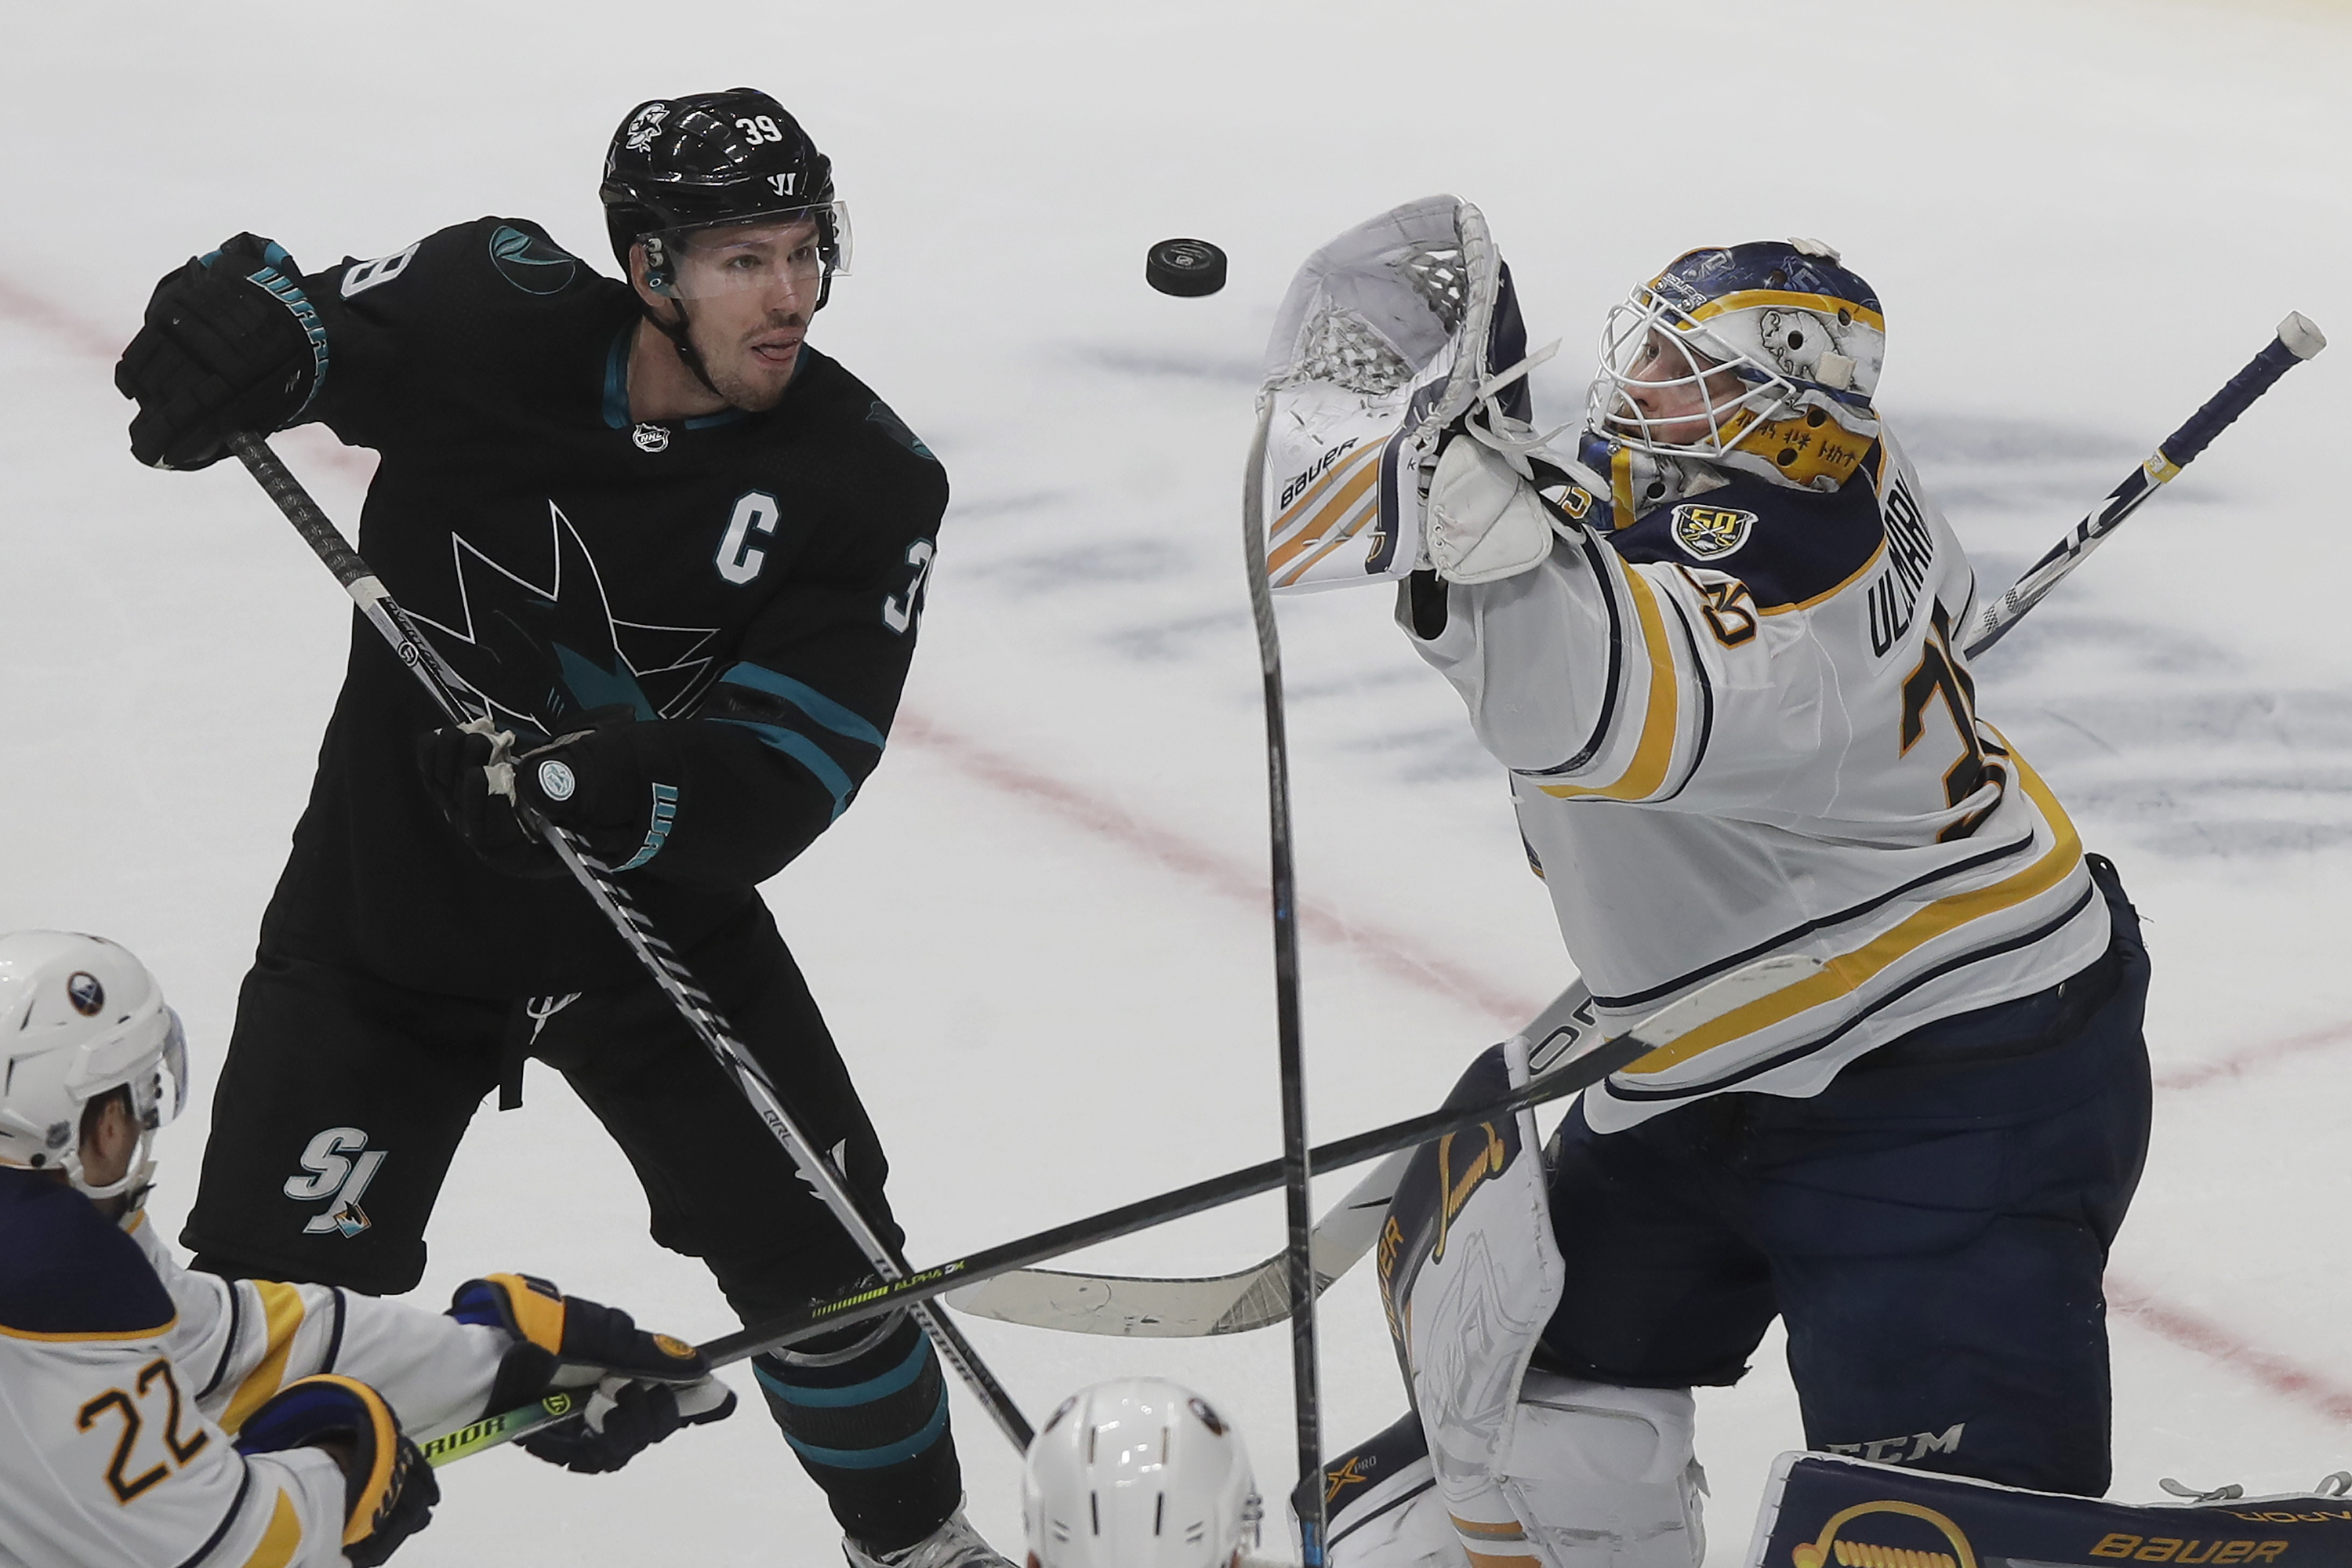 Girgensons' late goal lifts Sabres over Sharks 4-3